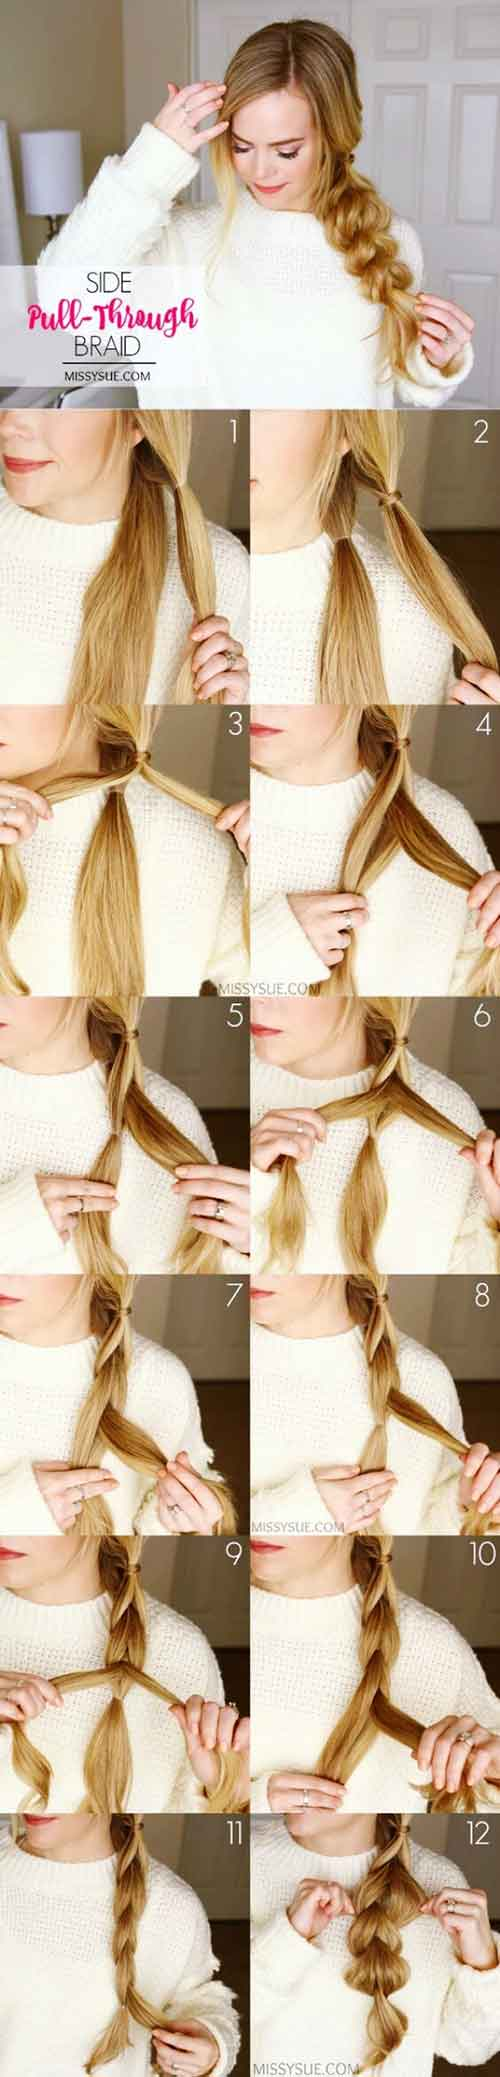 Redefined Side Pull-Through Braid